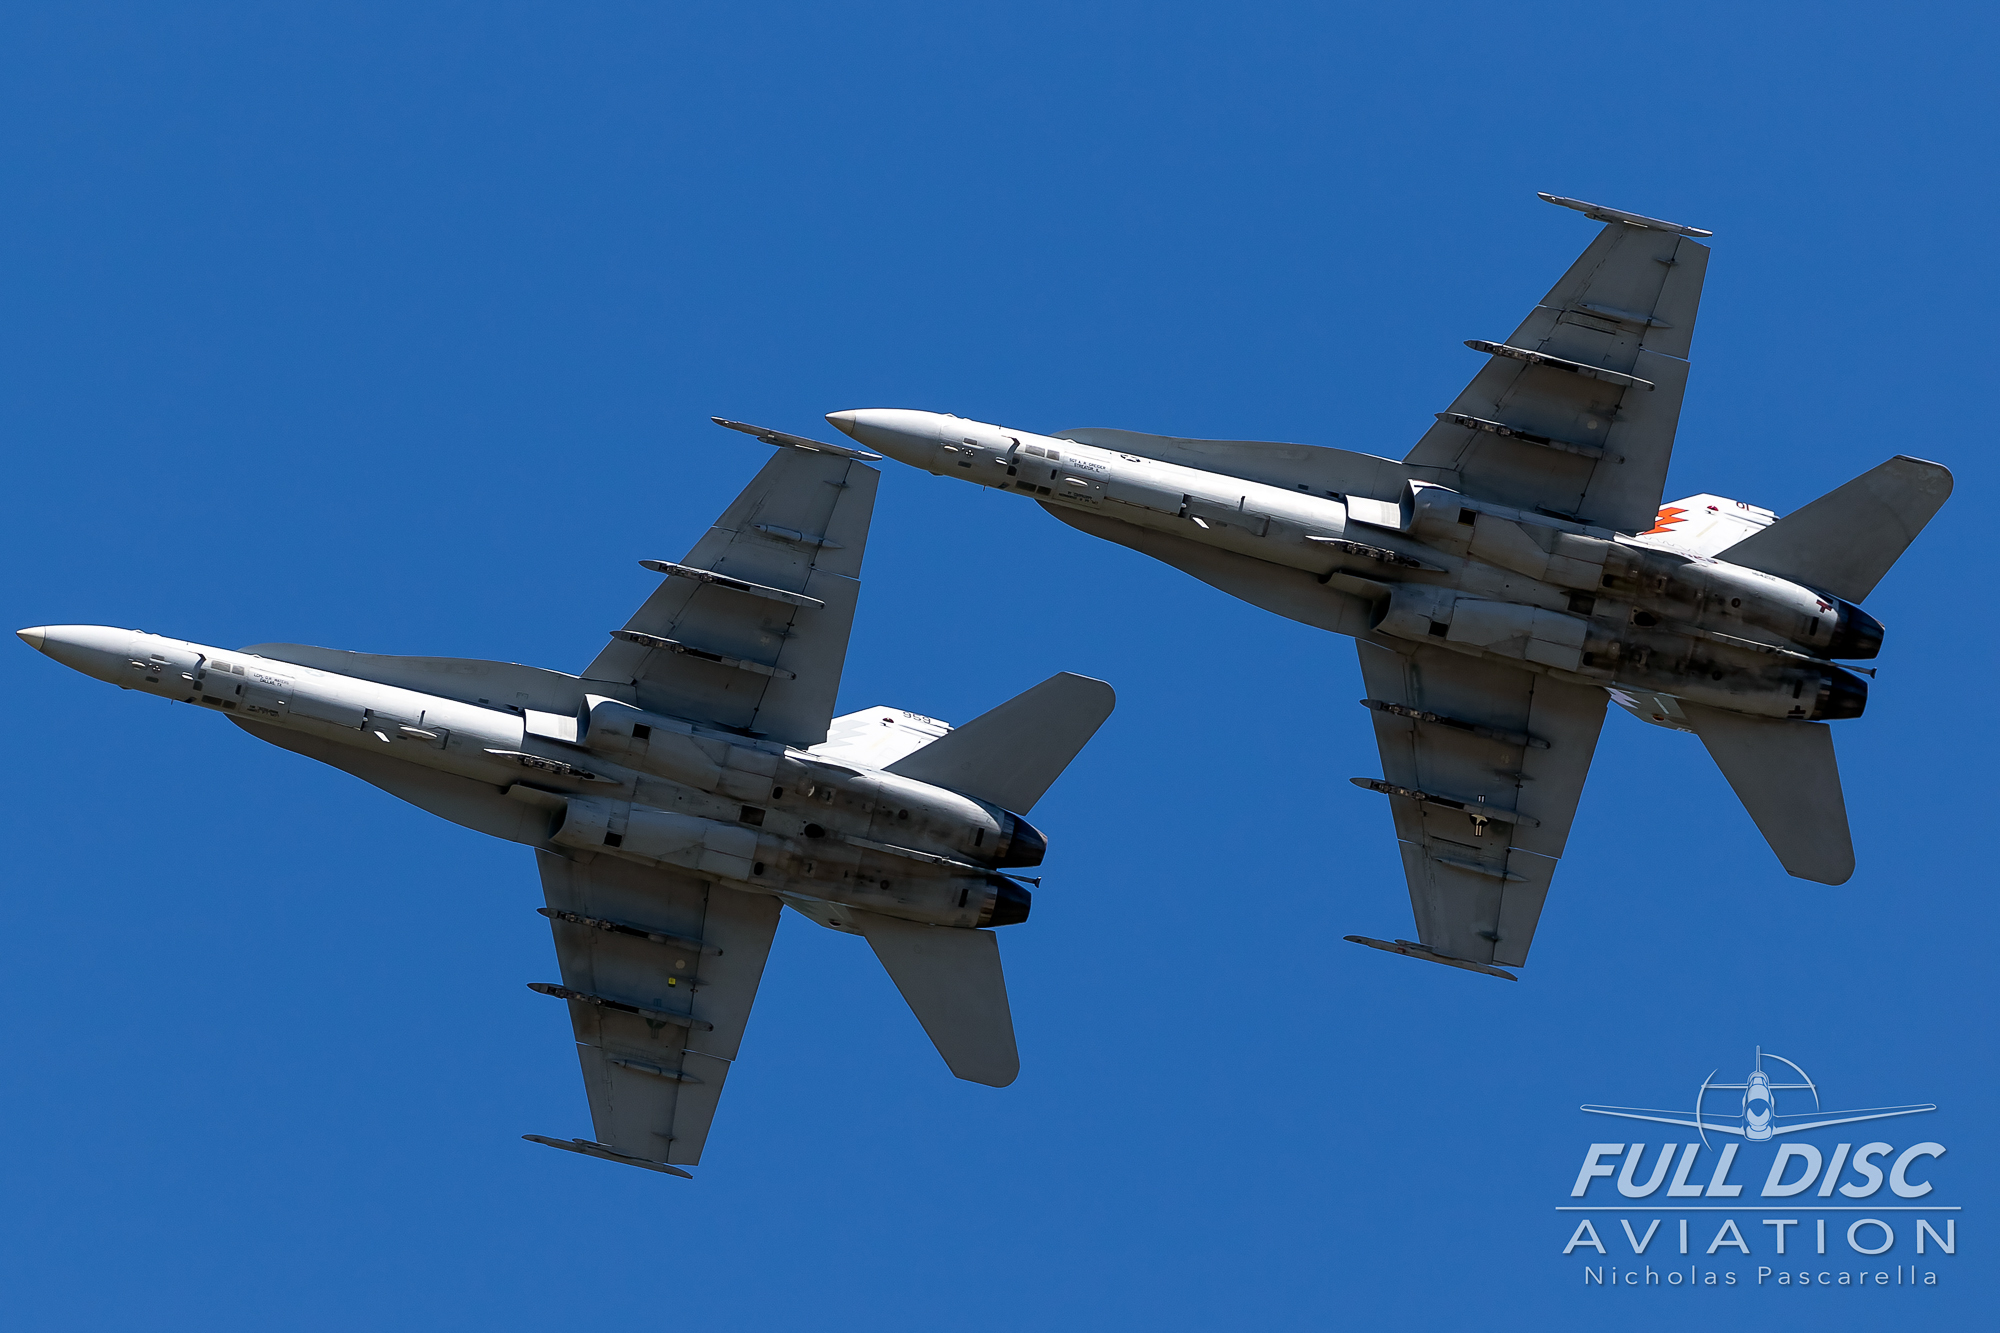 f18_f18hornets_mcasbeaufort_nicholaspascarella_fulldiscavation_aviation_airshow.jpg